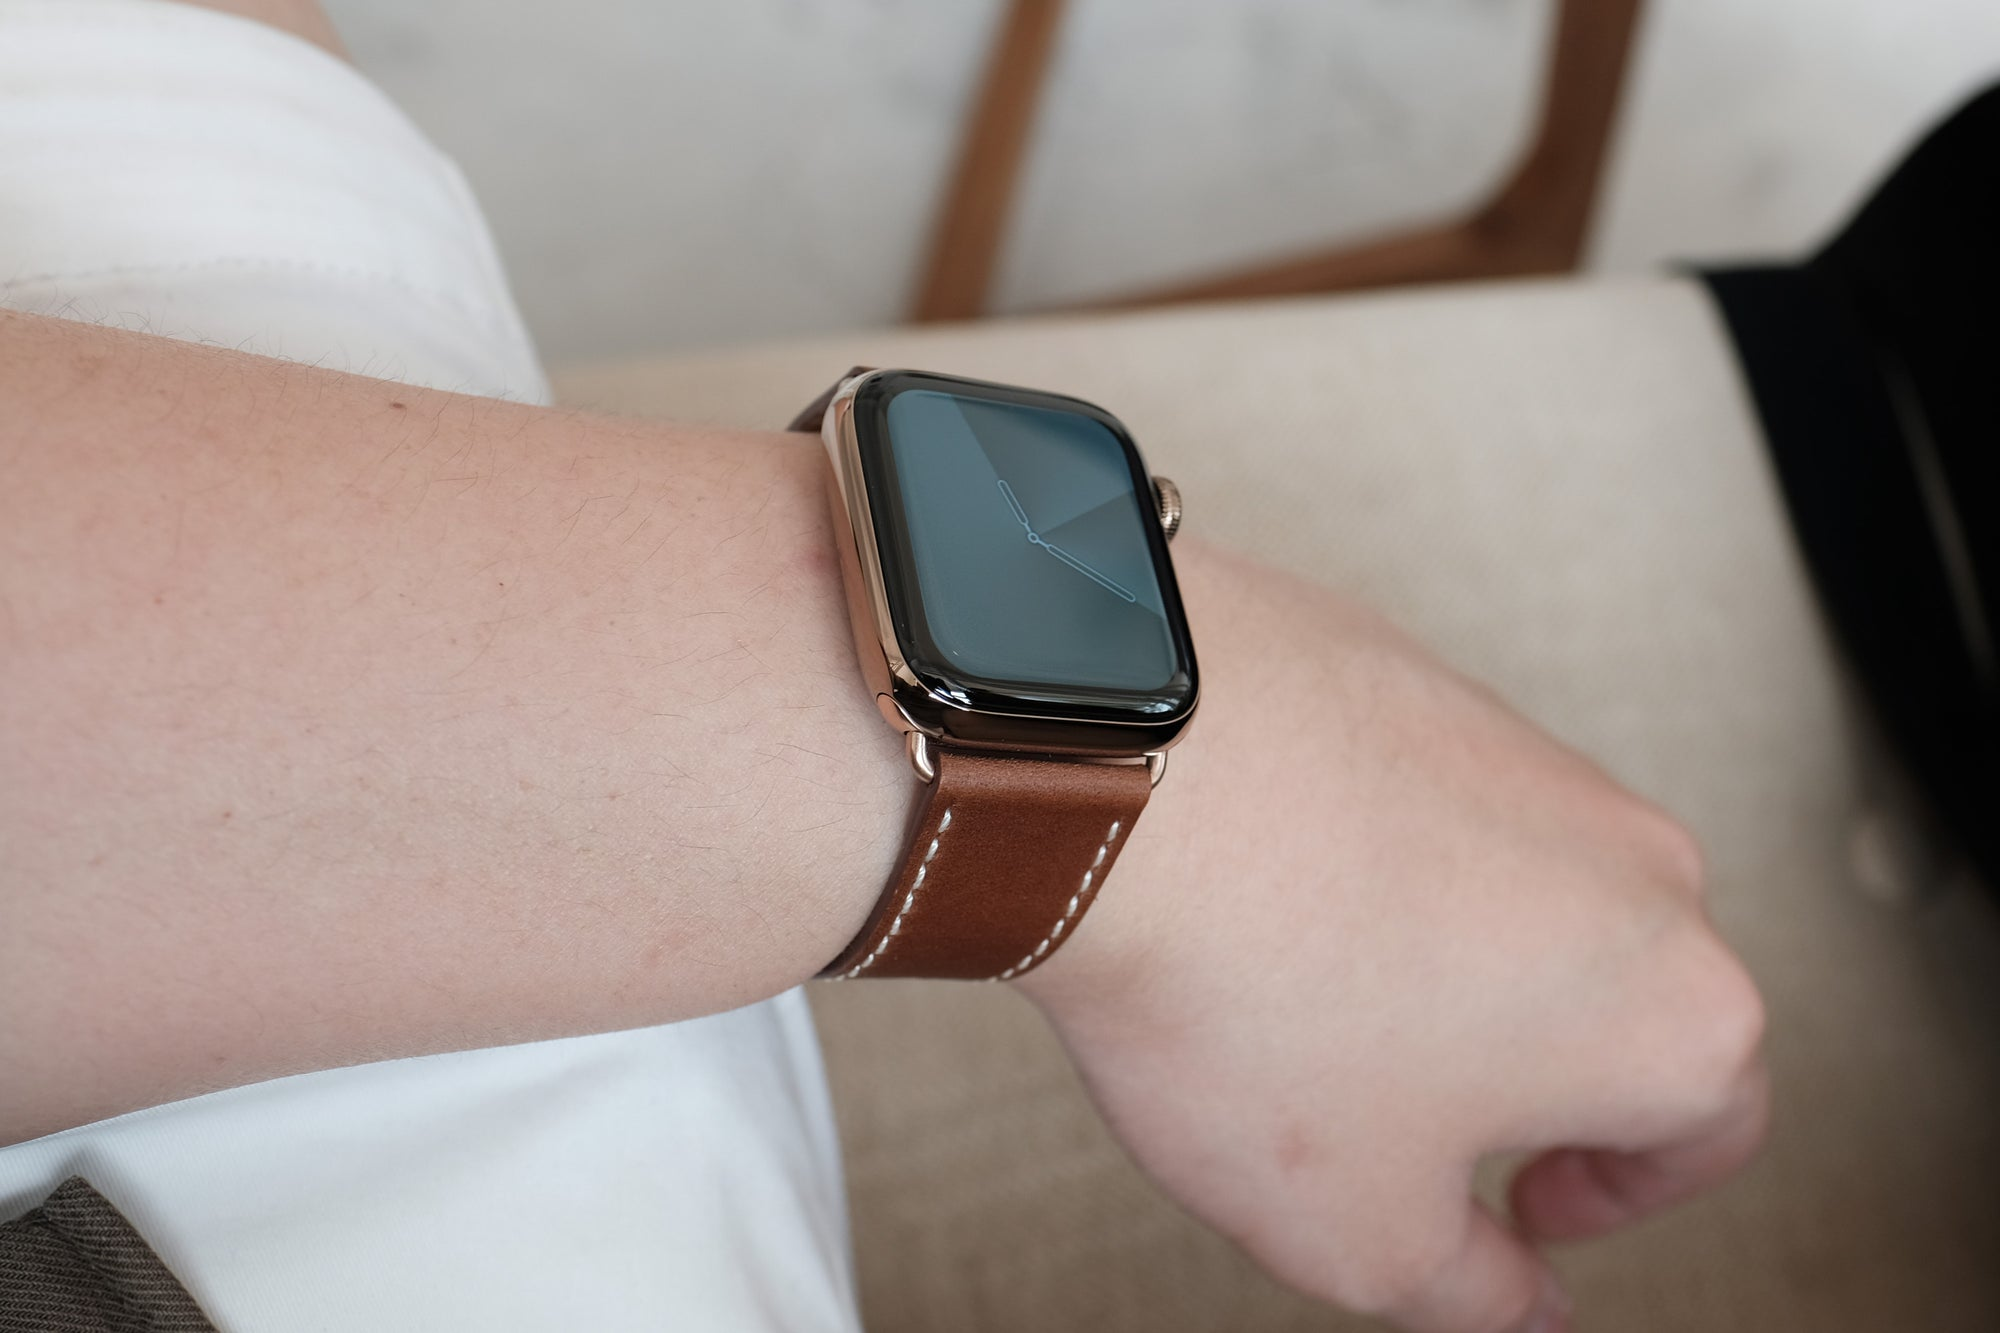 Pin and Buckle Apple Watch Bands - Full Grain Vegetable Tanned Leather - Luxe - Chestnut Brown - 4